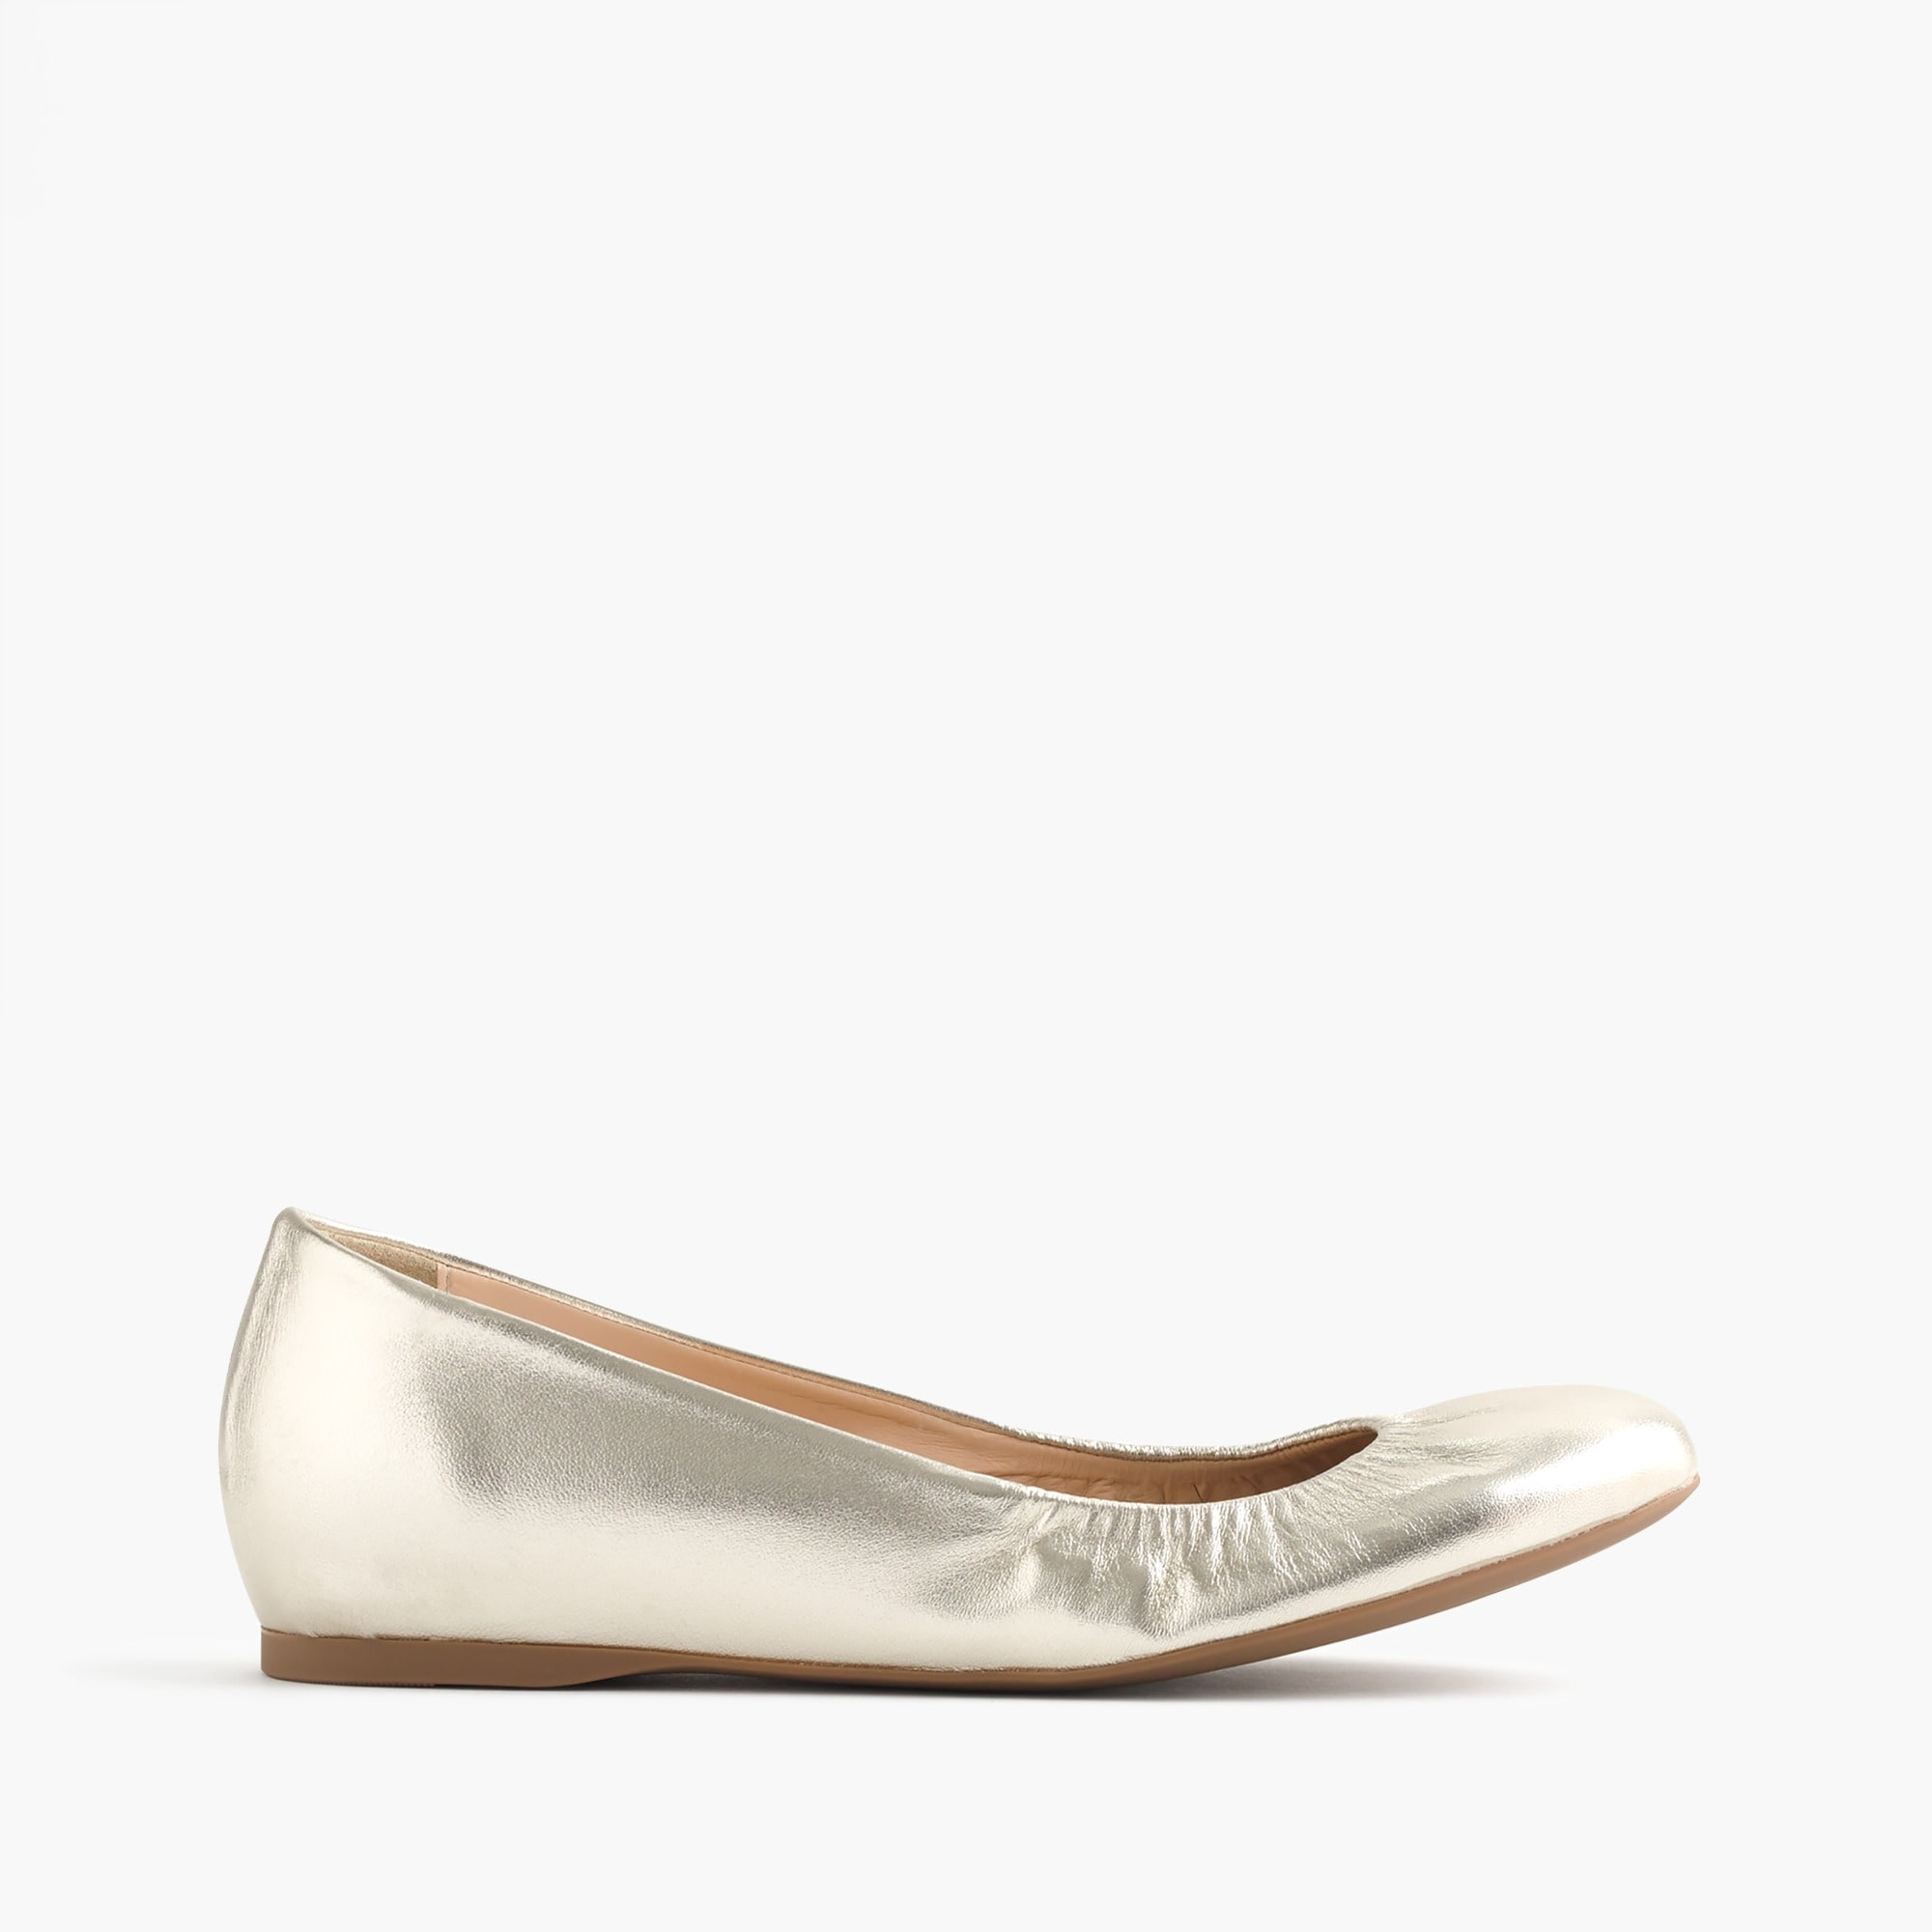 Cece Italian-made ballet flats in metallic leather